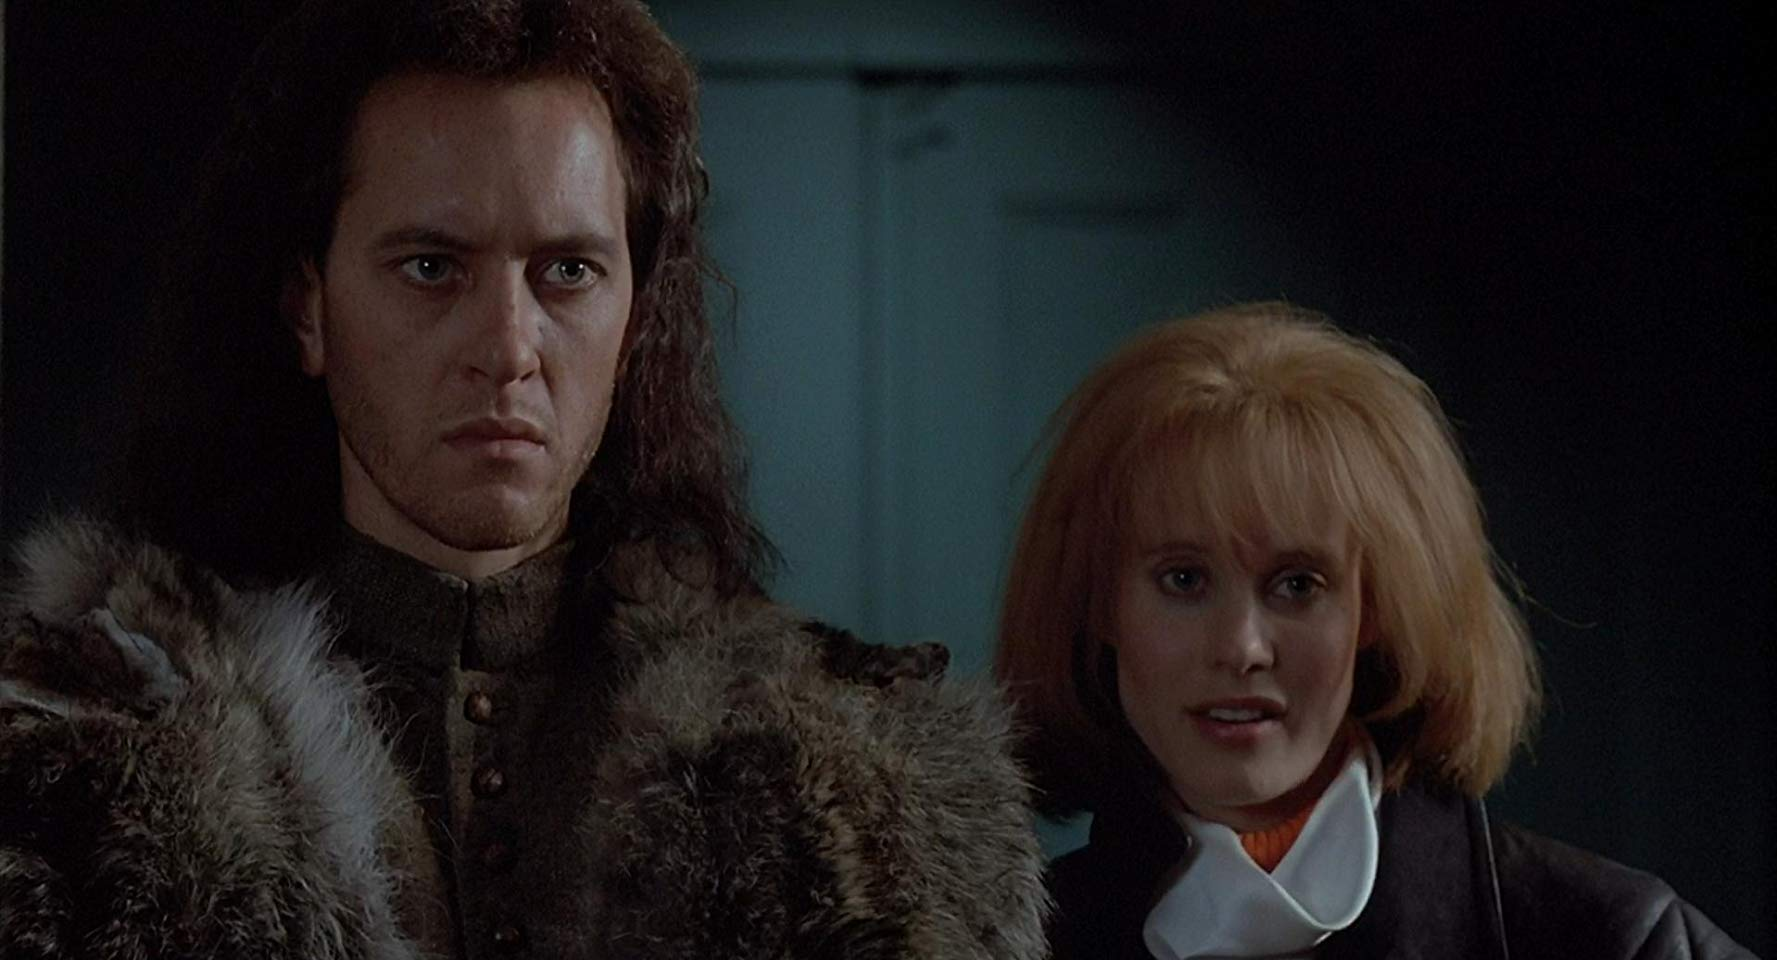 Time-travelling witchfinder Giles Redferne (Richard E. Grant) and modern girl Kassandra (Lori Singer) in Warlock (1989)